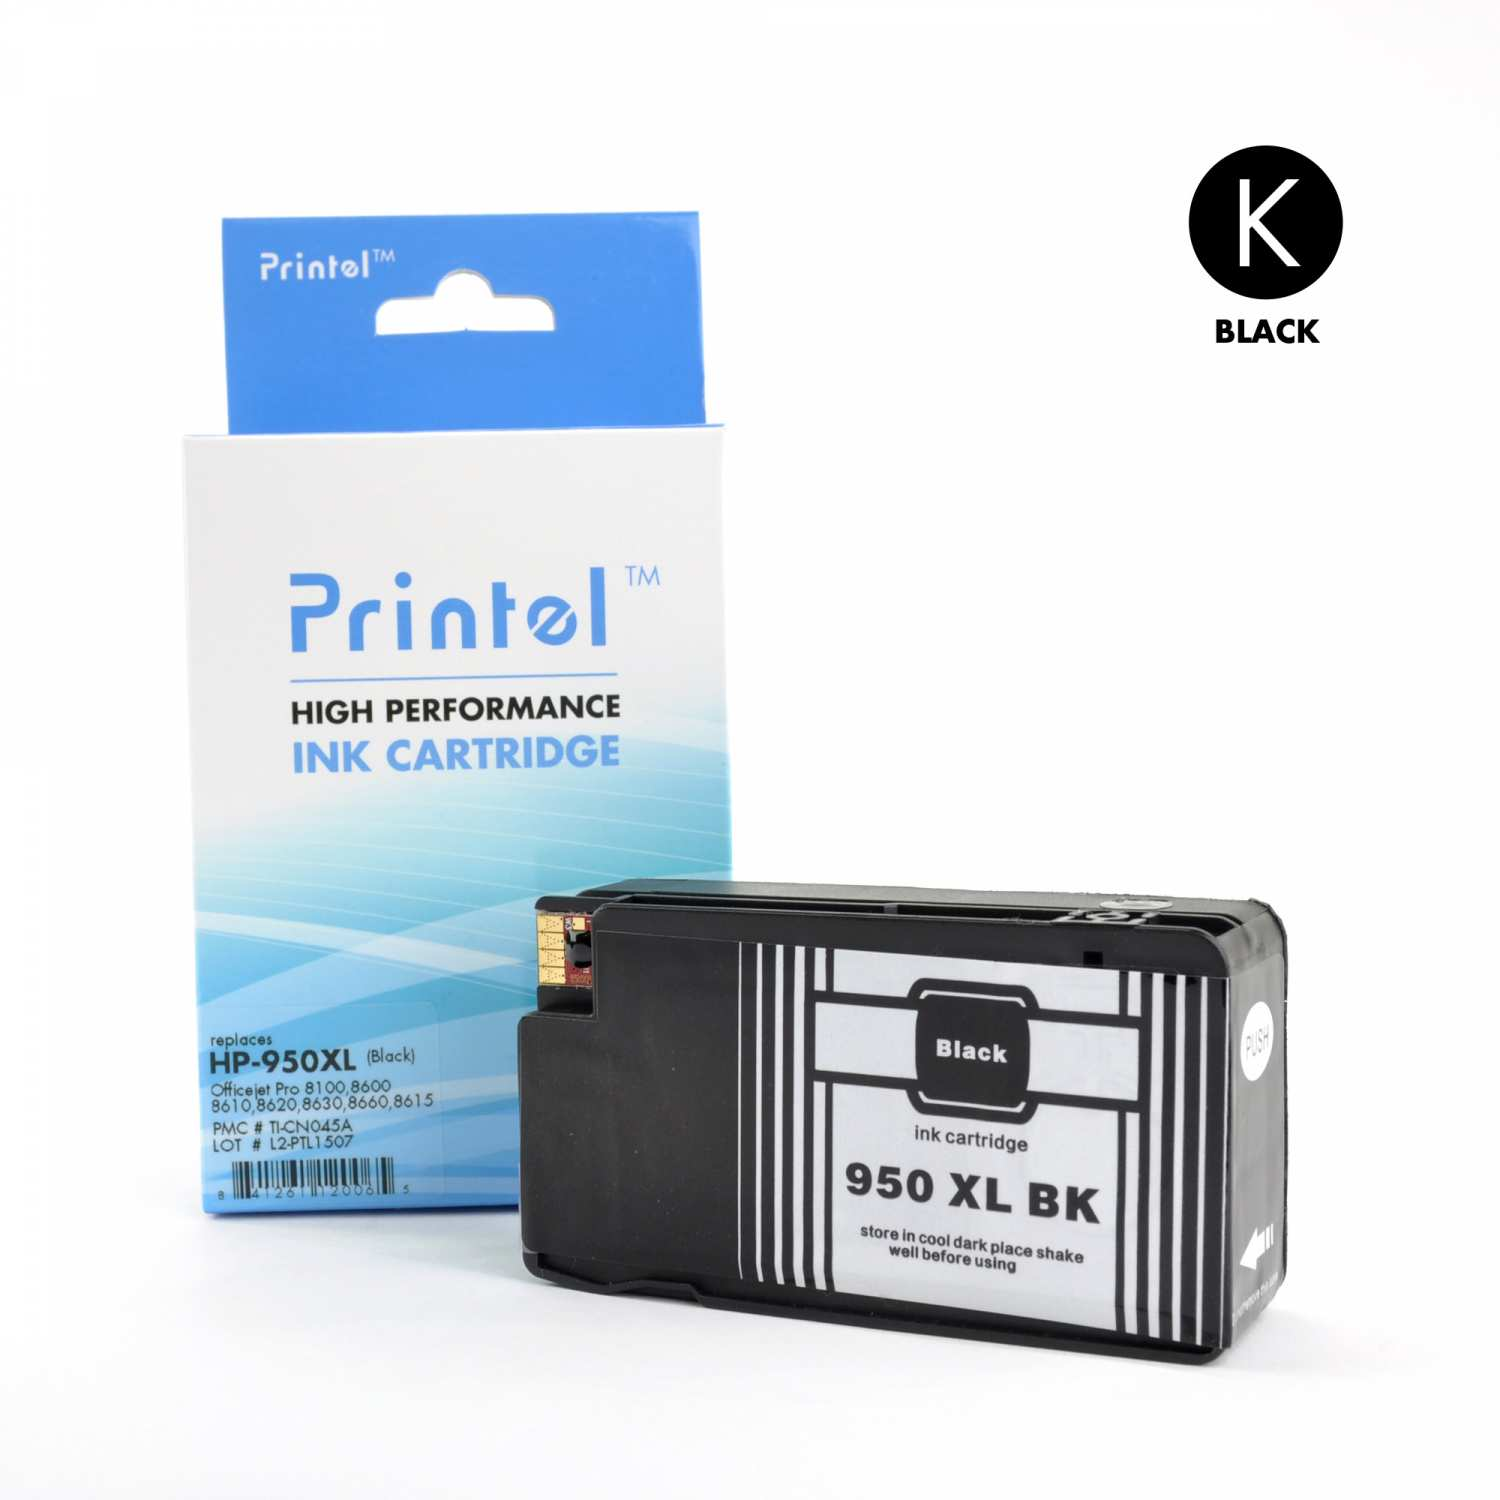 Printel Brand New Replacement Ink Cartridge for HP 950XL ...